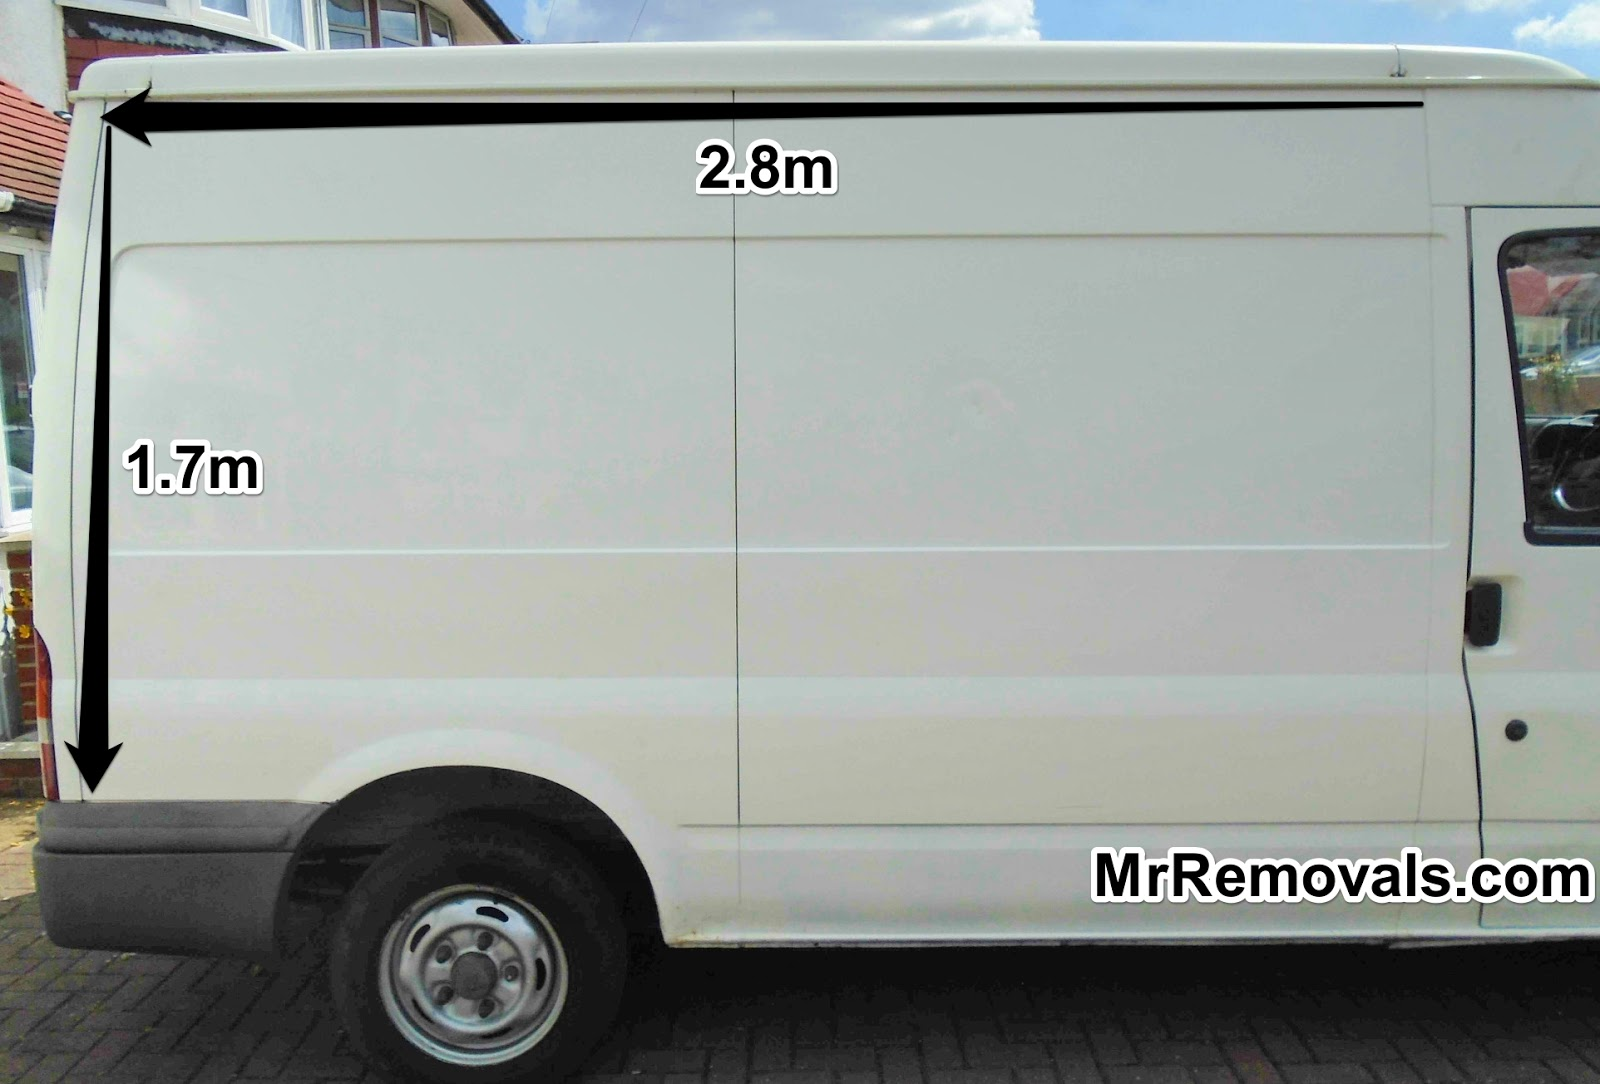 b7b0a460d9 We have a man and a Transit van returning to London (Guildford